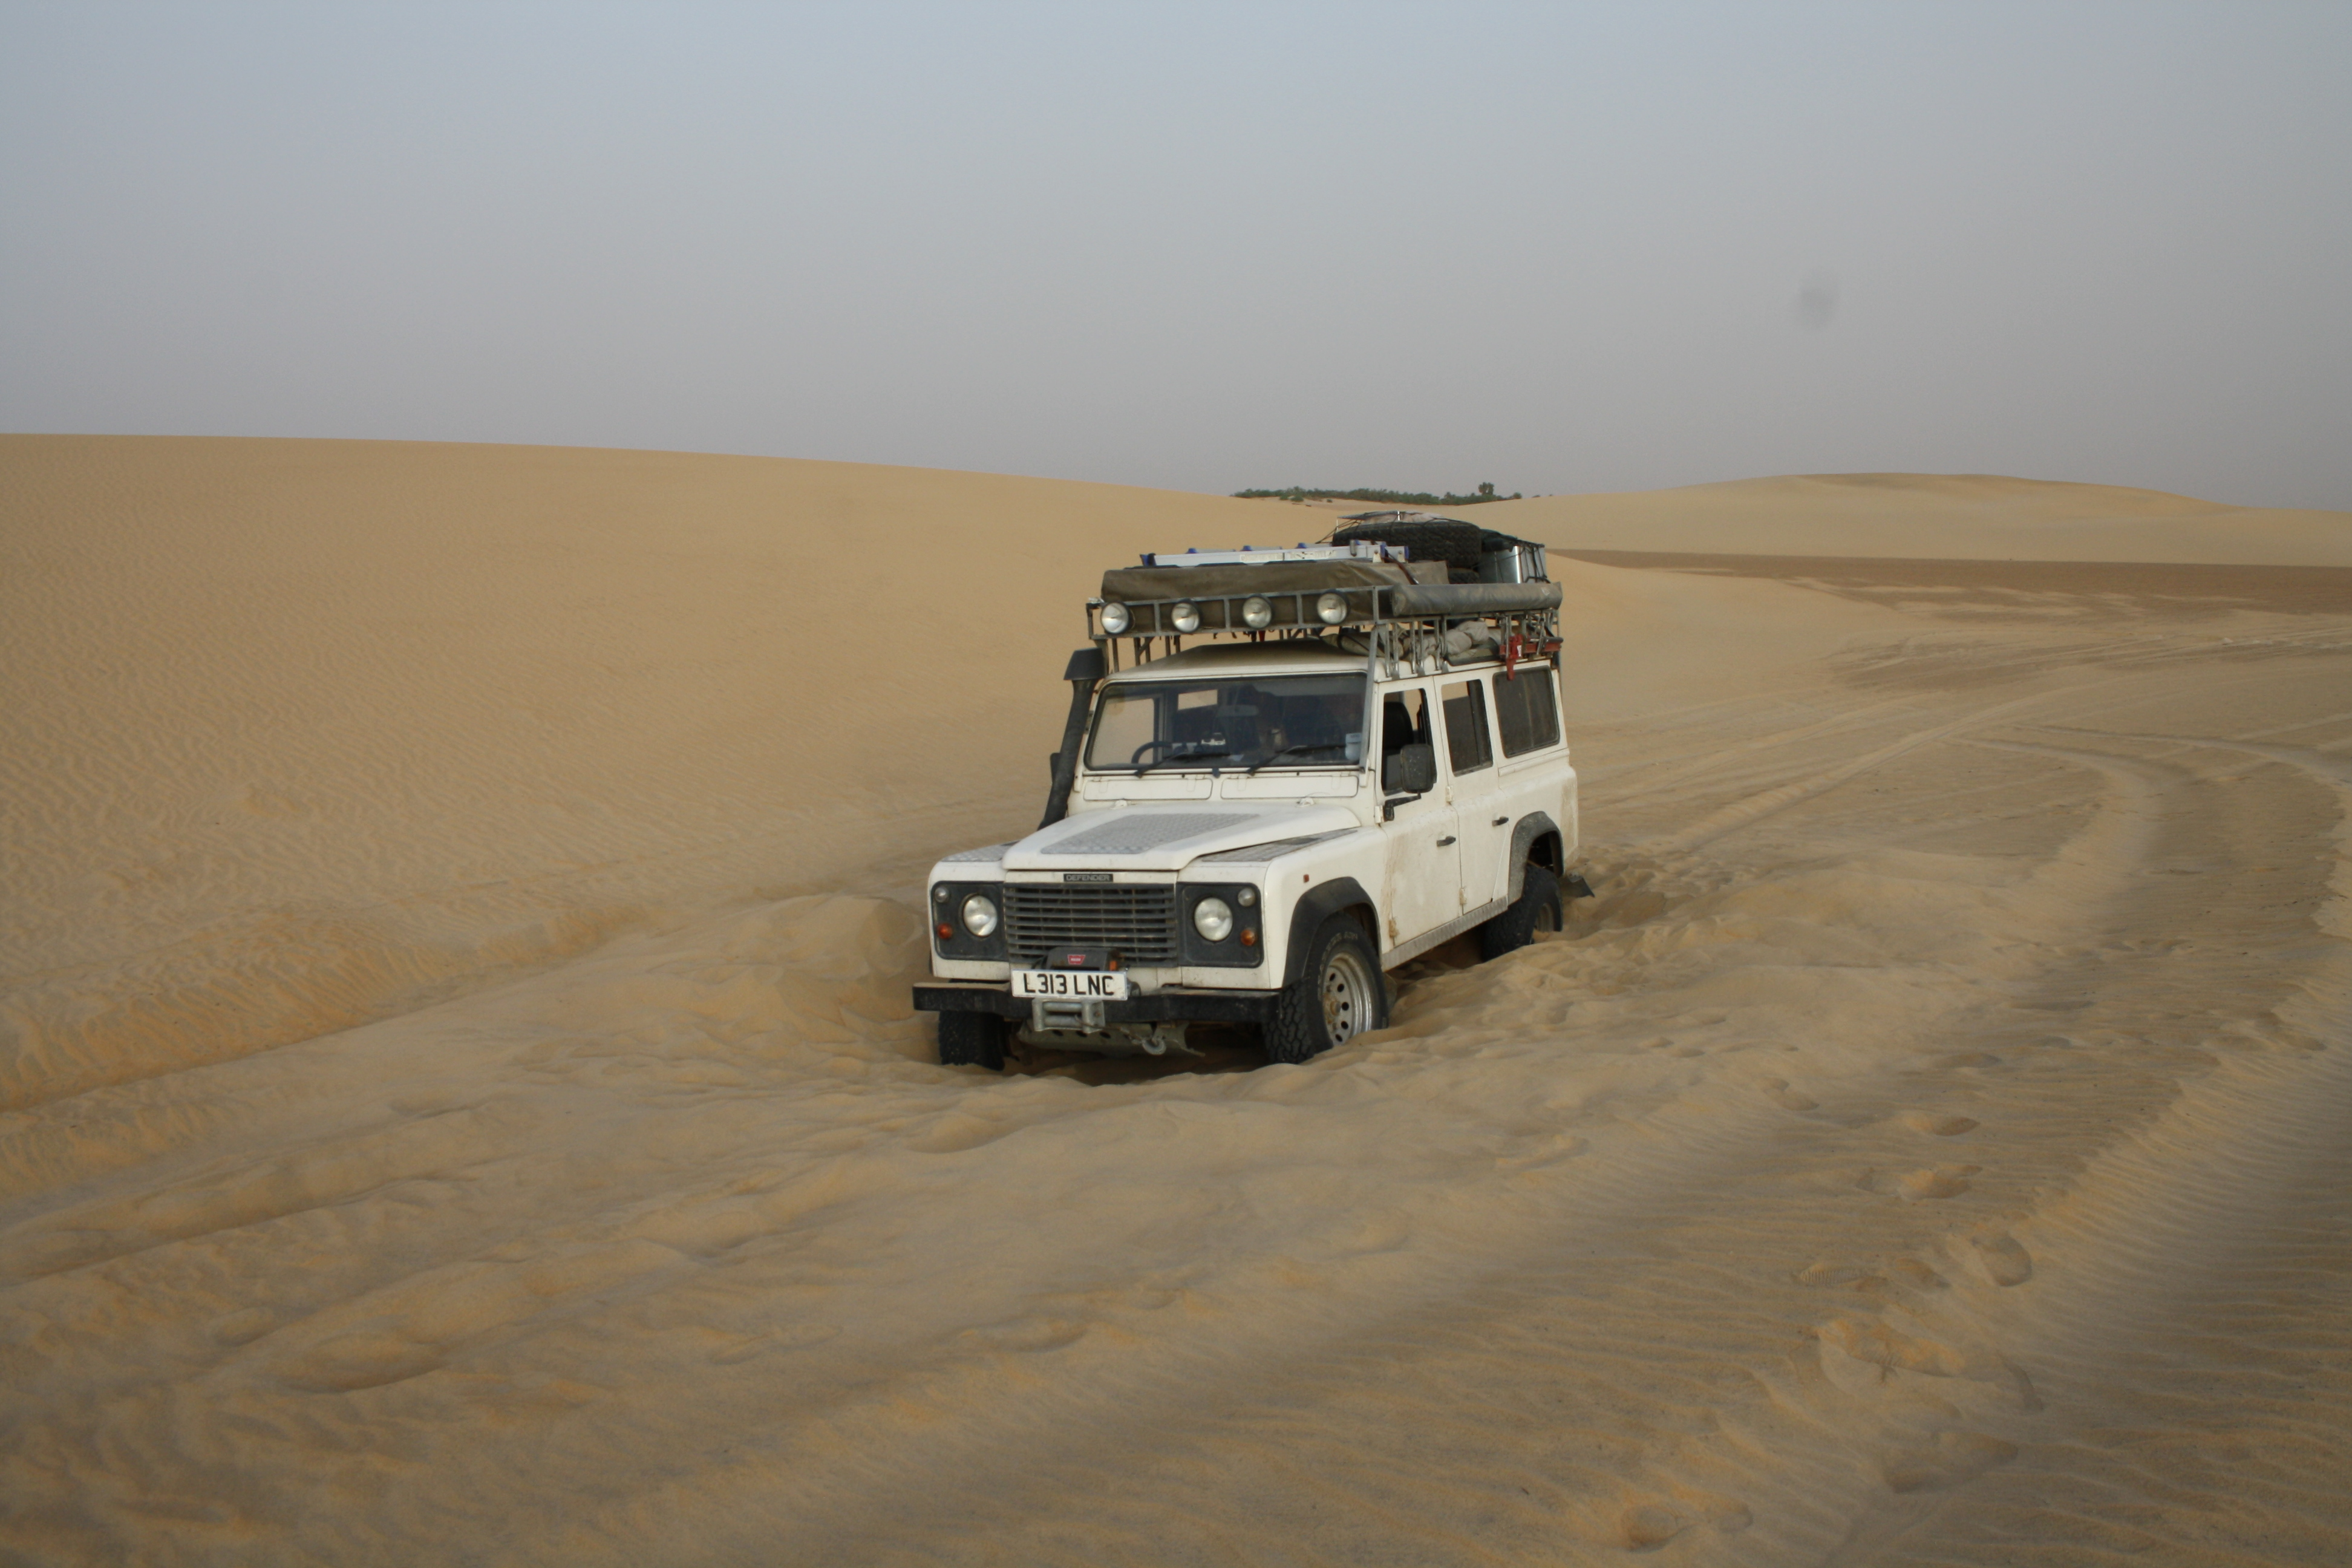 Land rover 110 defender overland sale vendo | nicolaszezza